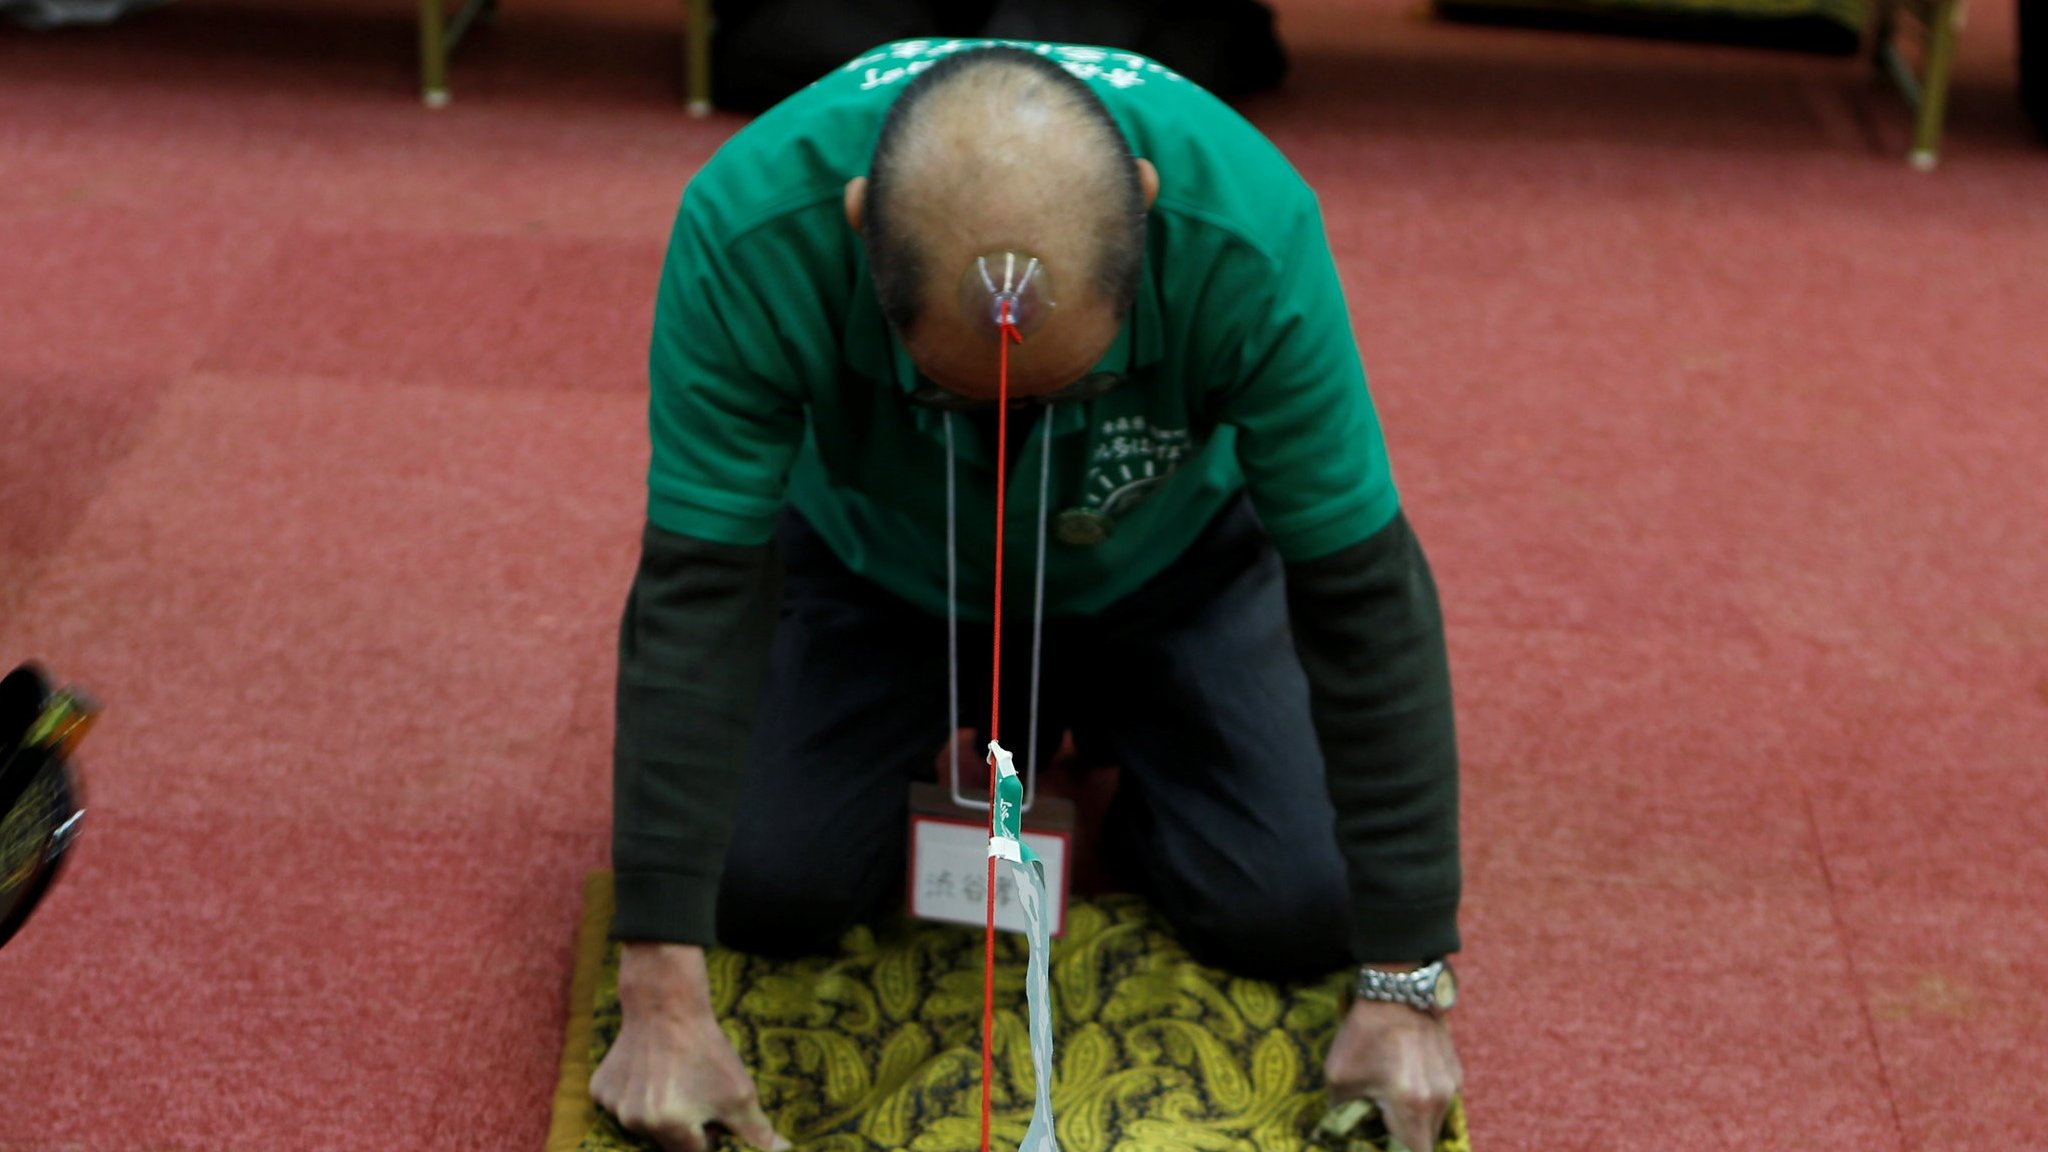 Japanese men celebrate 'baldy' pull factor